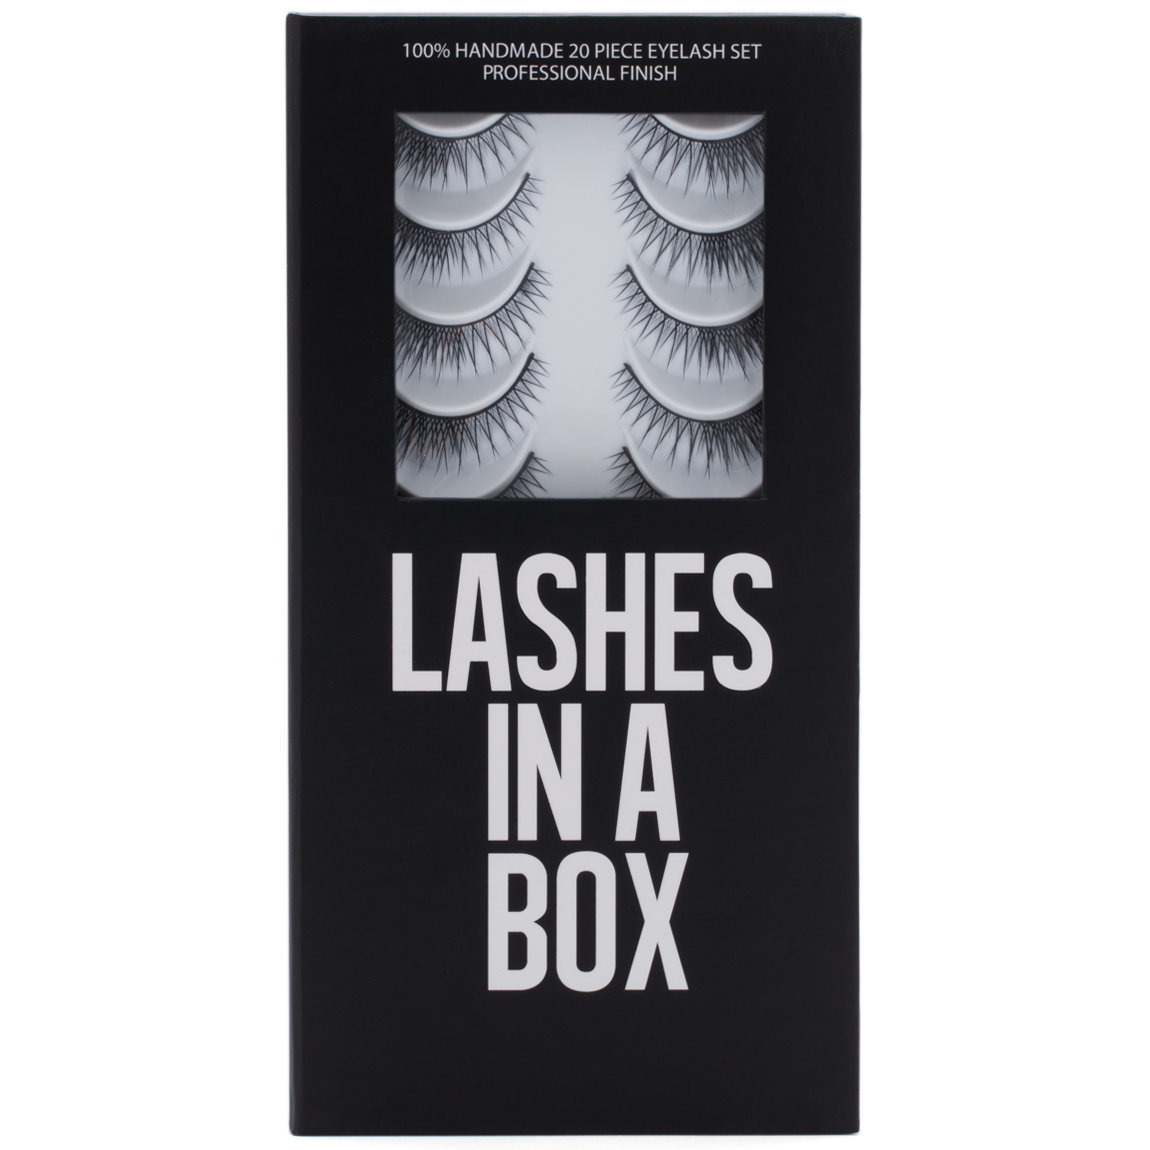 LASHES IN A BOX N°11 product swatch.